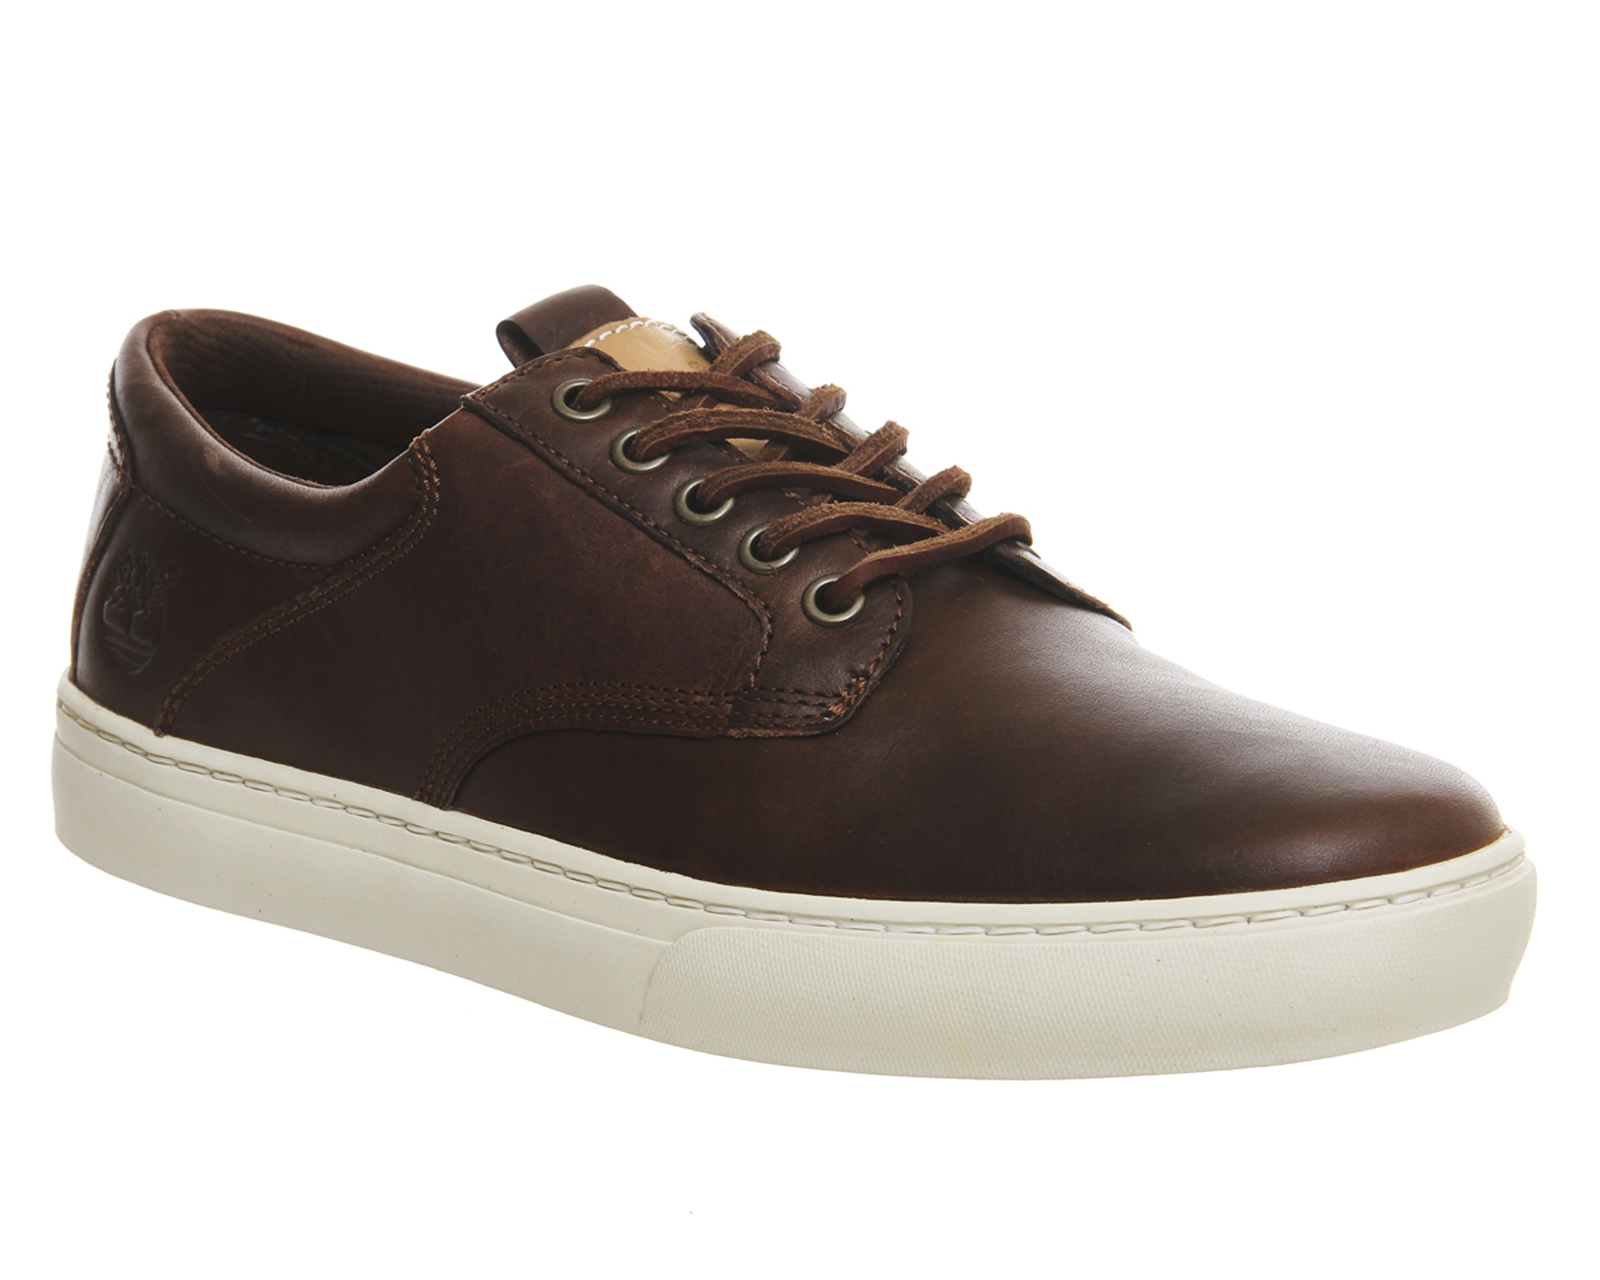 mens timberland adventure 2 0 cupsole oxford dark brown leather casual shoes ebay. Black Bedroom Furniture Sets. Home Design Ideas